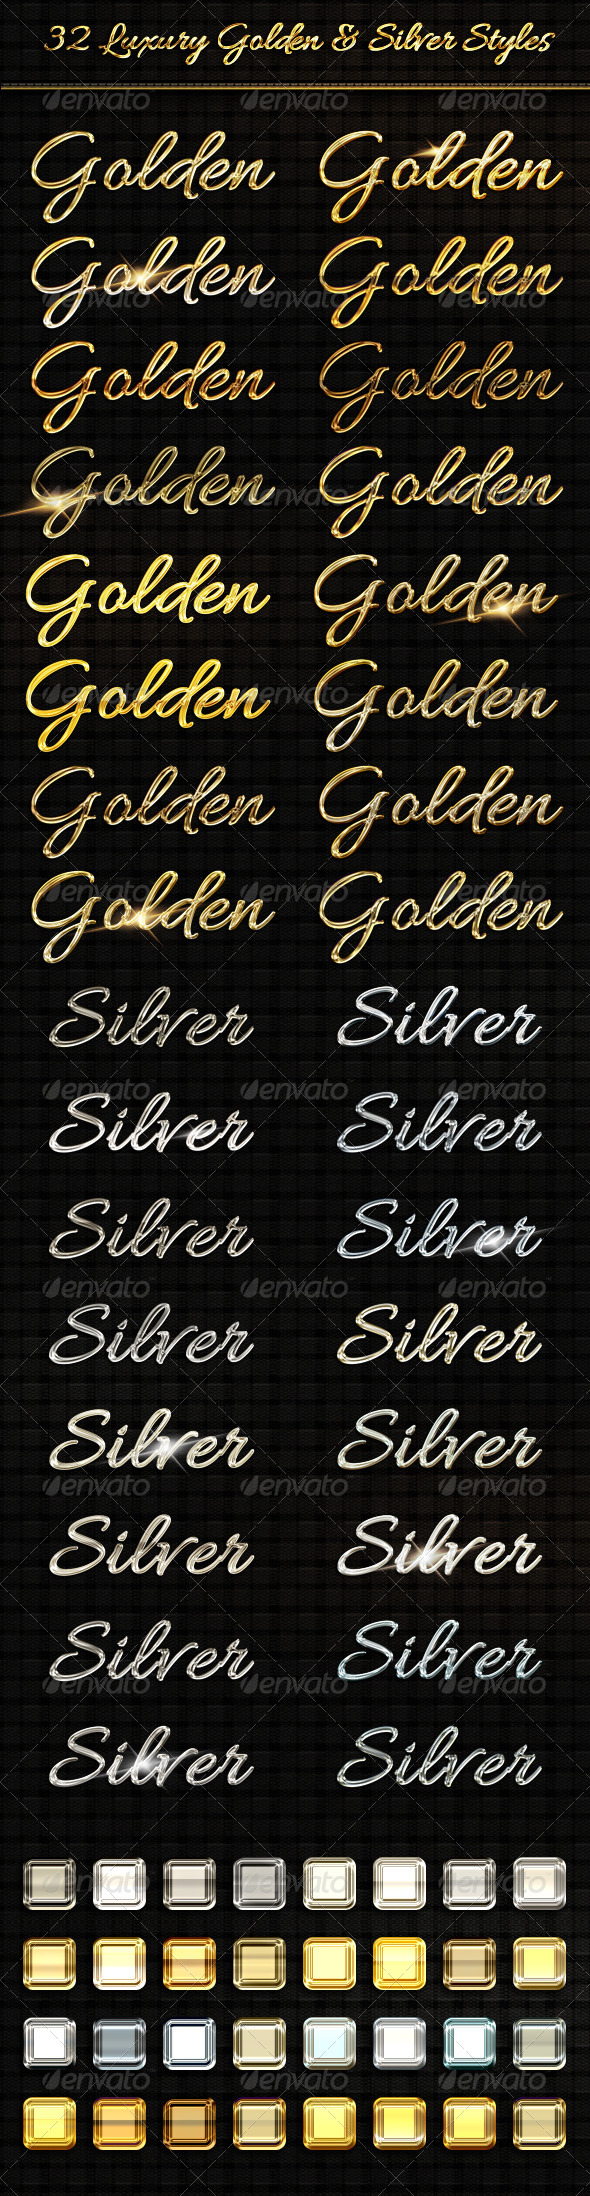 GraphicRiver BUNDLE 32 Luxury Golden & Silver Text Sty 8218643